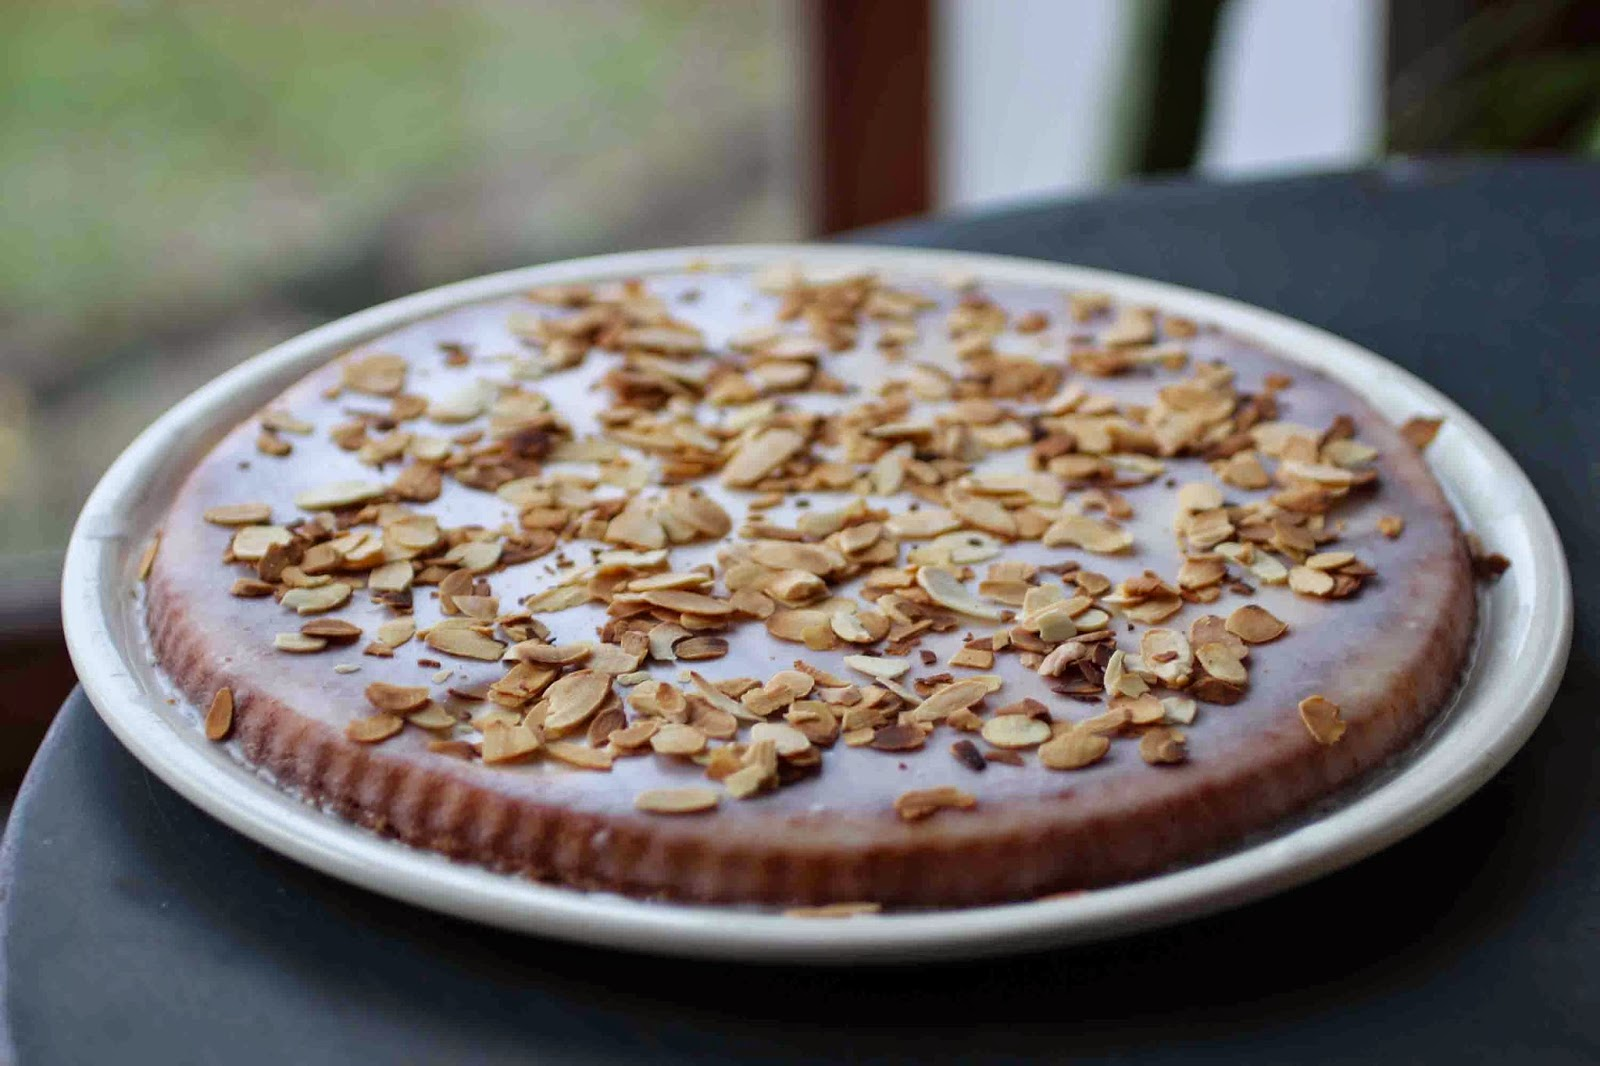 http://camilleenchocolat.blogspot.fr/2015/02/pithiviers-aux-amandes.html